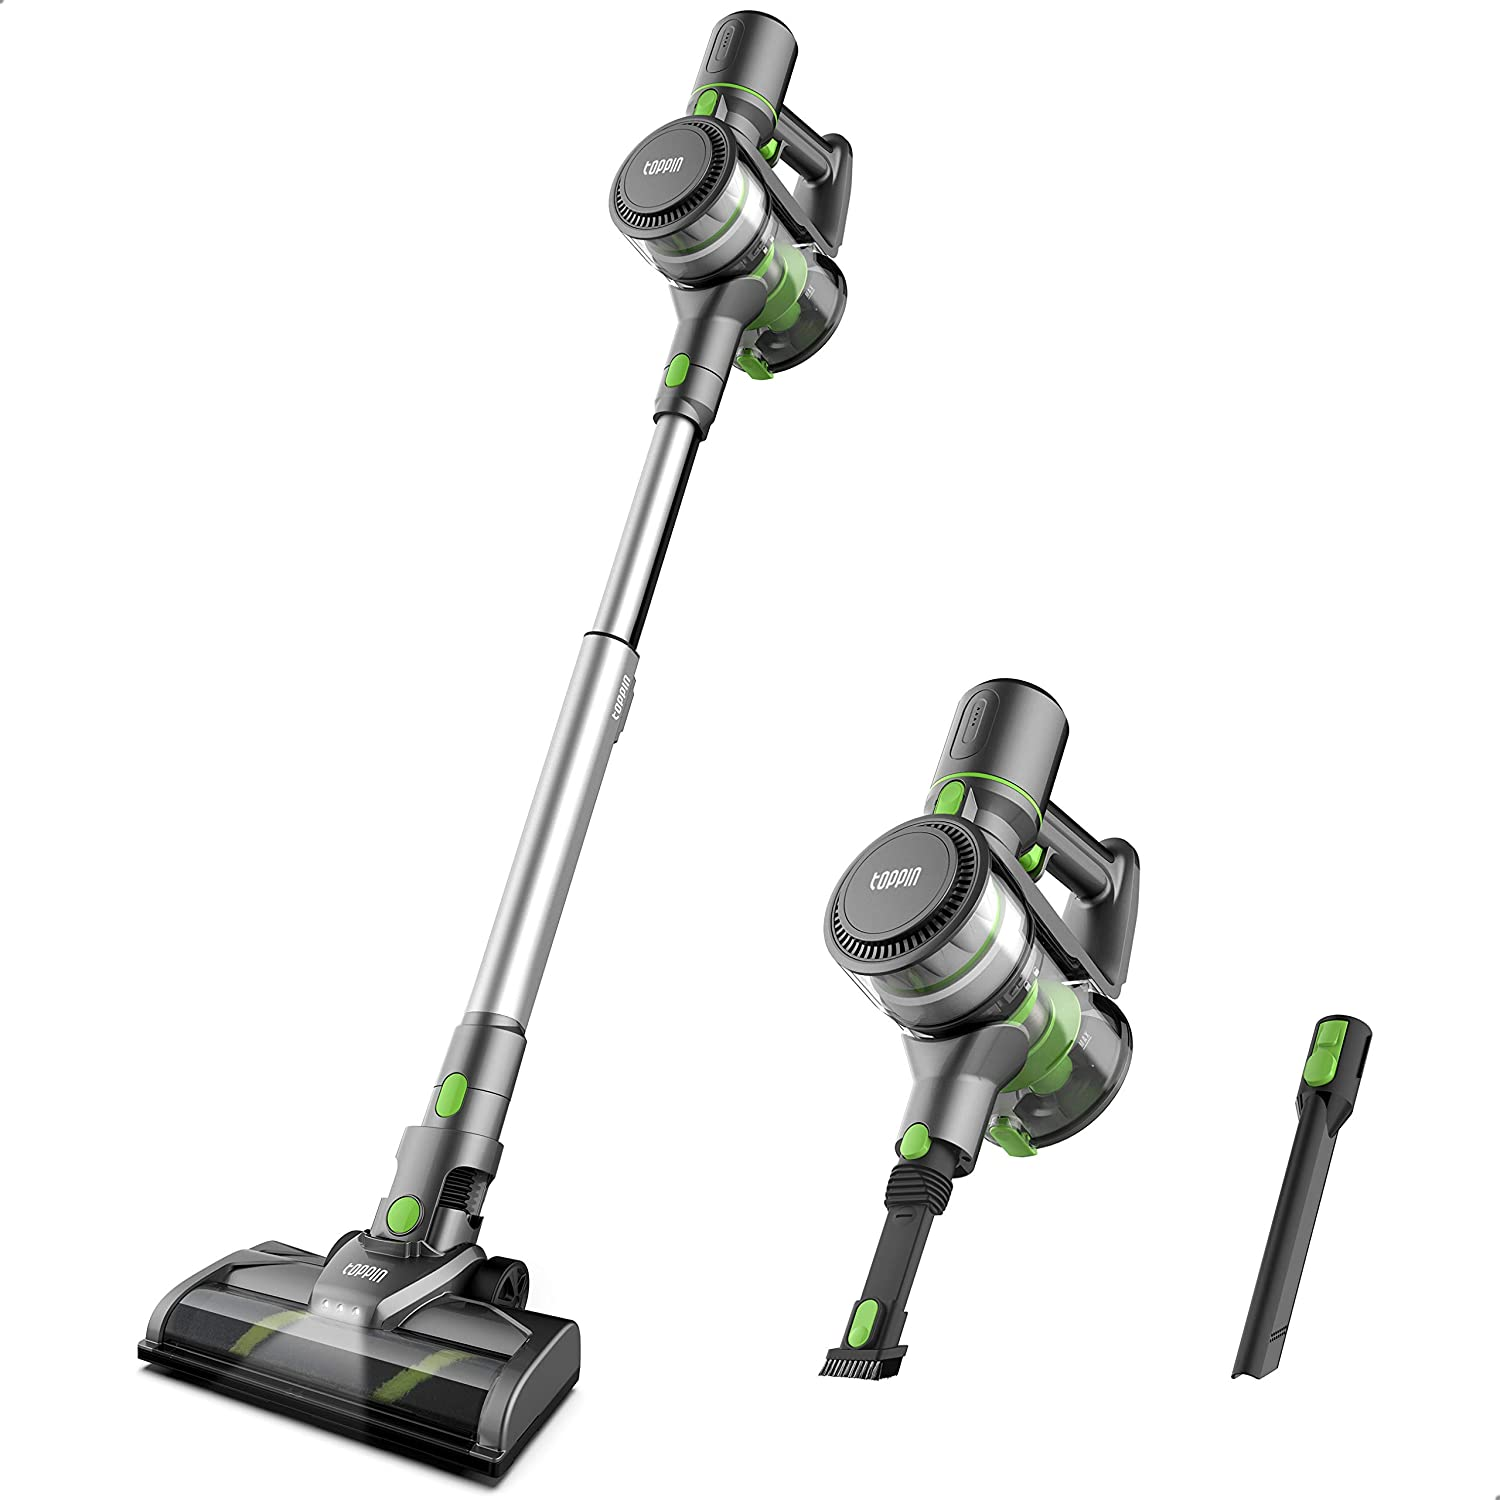 TOPPIN Stick Vacuum Cleaner Cordless - Tangle-Free 6 in 1 Powerful 12Kpa Suction Stick Vacuum, Lightweight and Big Capacity, Up to 35min Runtime, Ideal for Home Hard Floor Carpet Car Pet